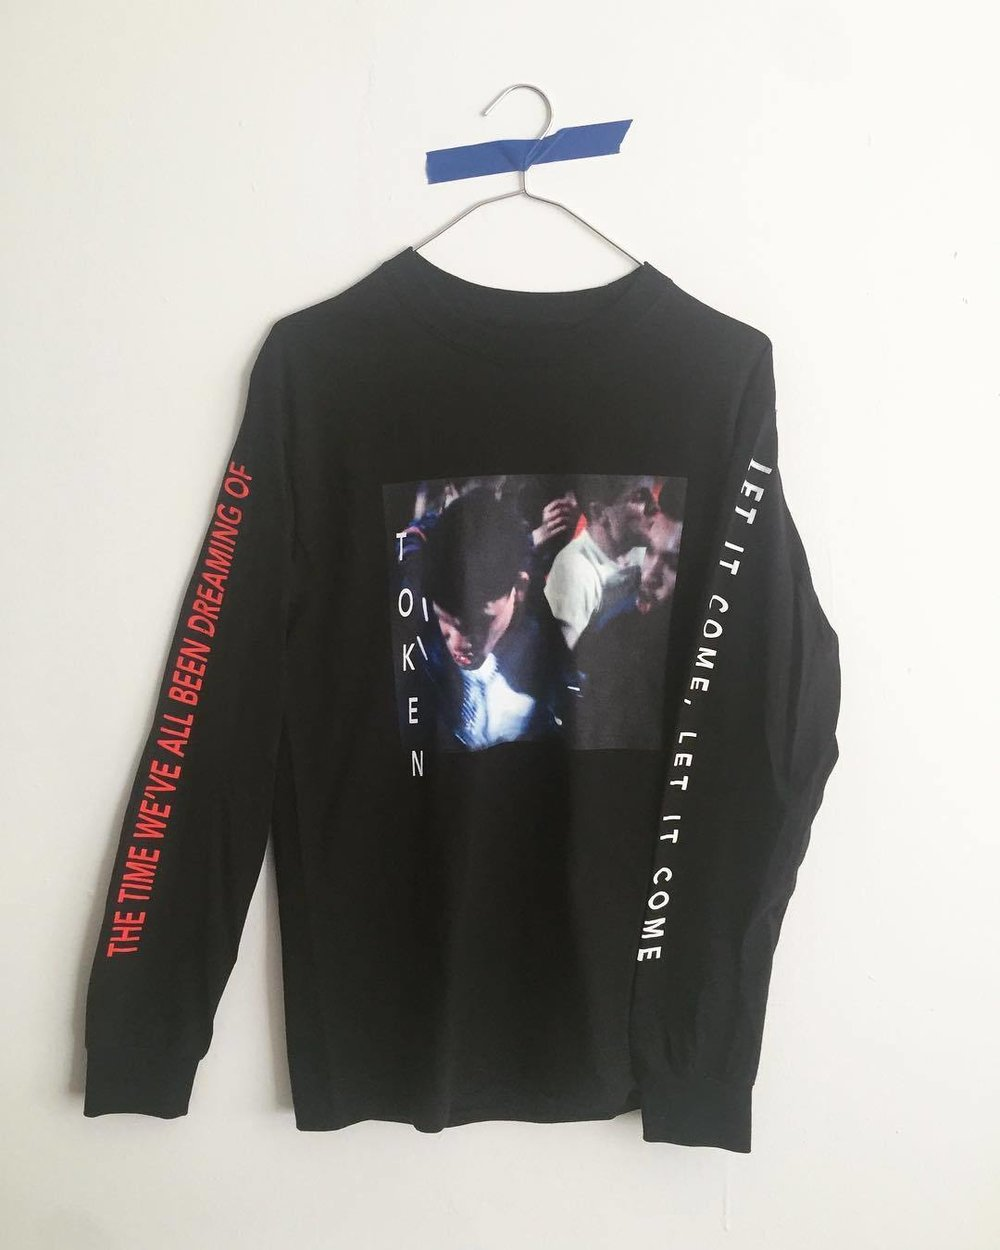 "'Decline' longsleeve part of FW'17 issuing 9/1 💅 ""let it come, let it come the time we've all been dreaming of"" - A. Rimbaud http://ift.tt/2gg5sAN"